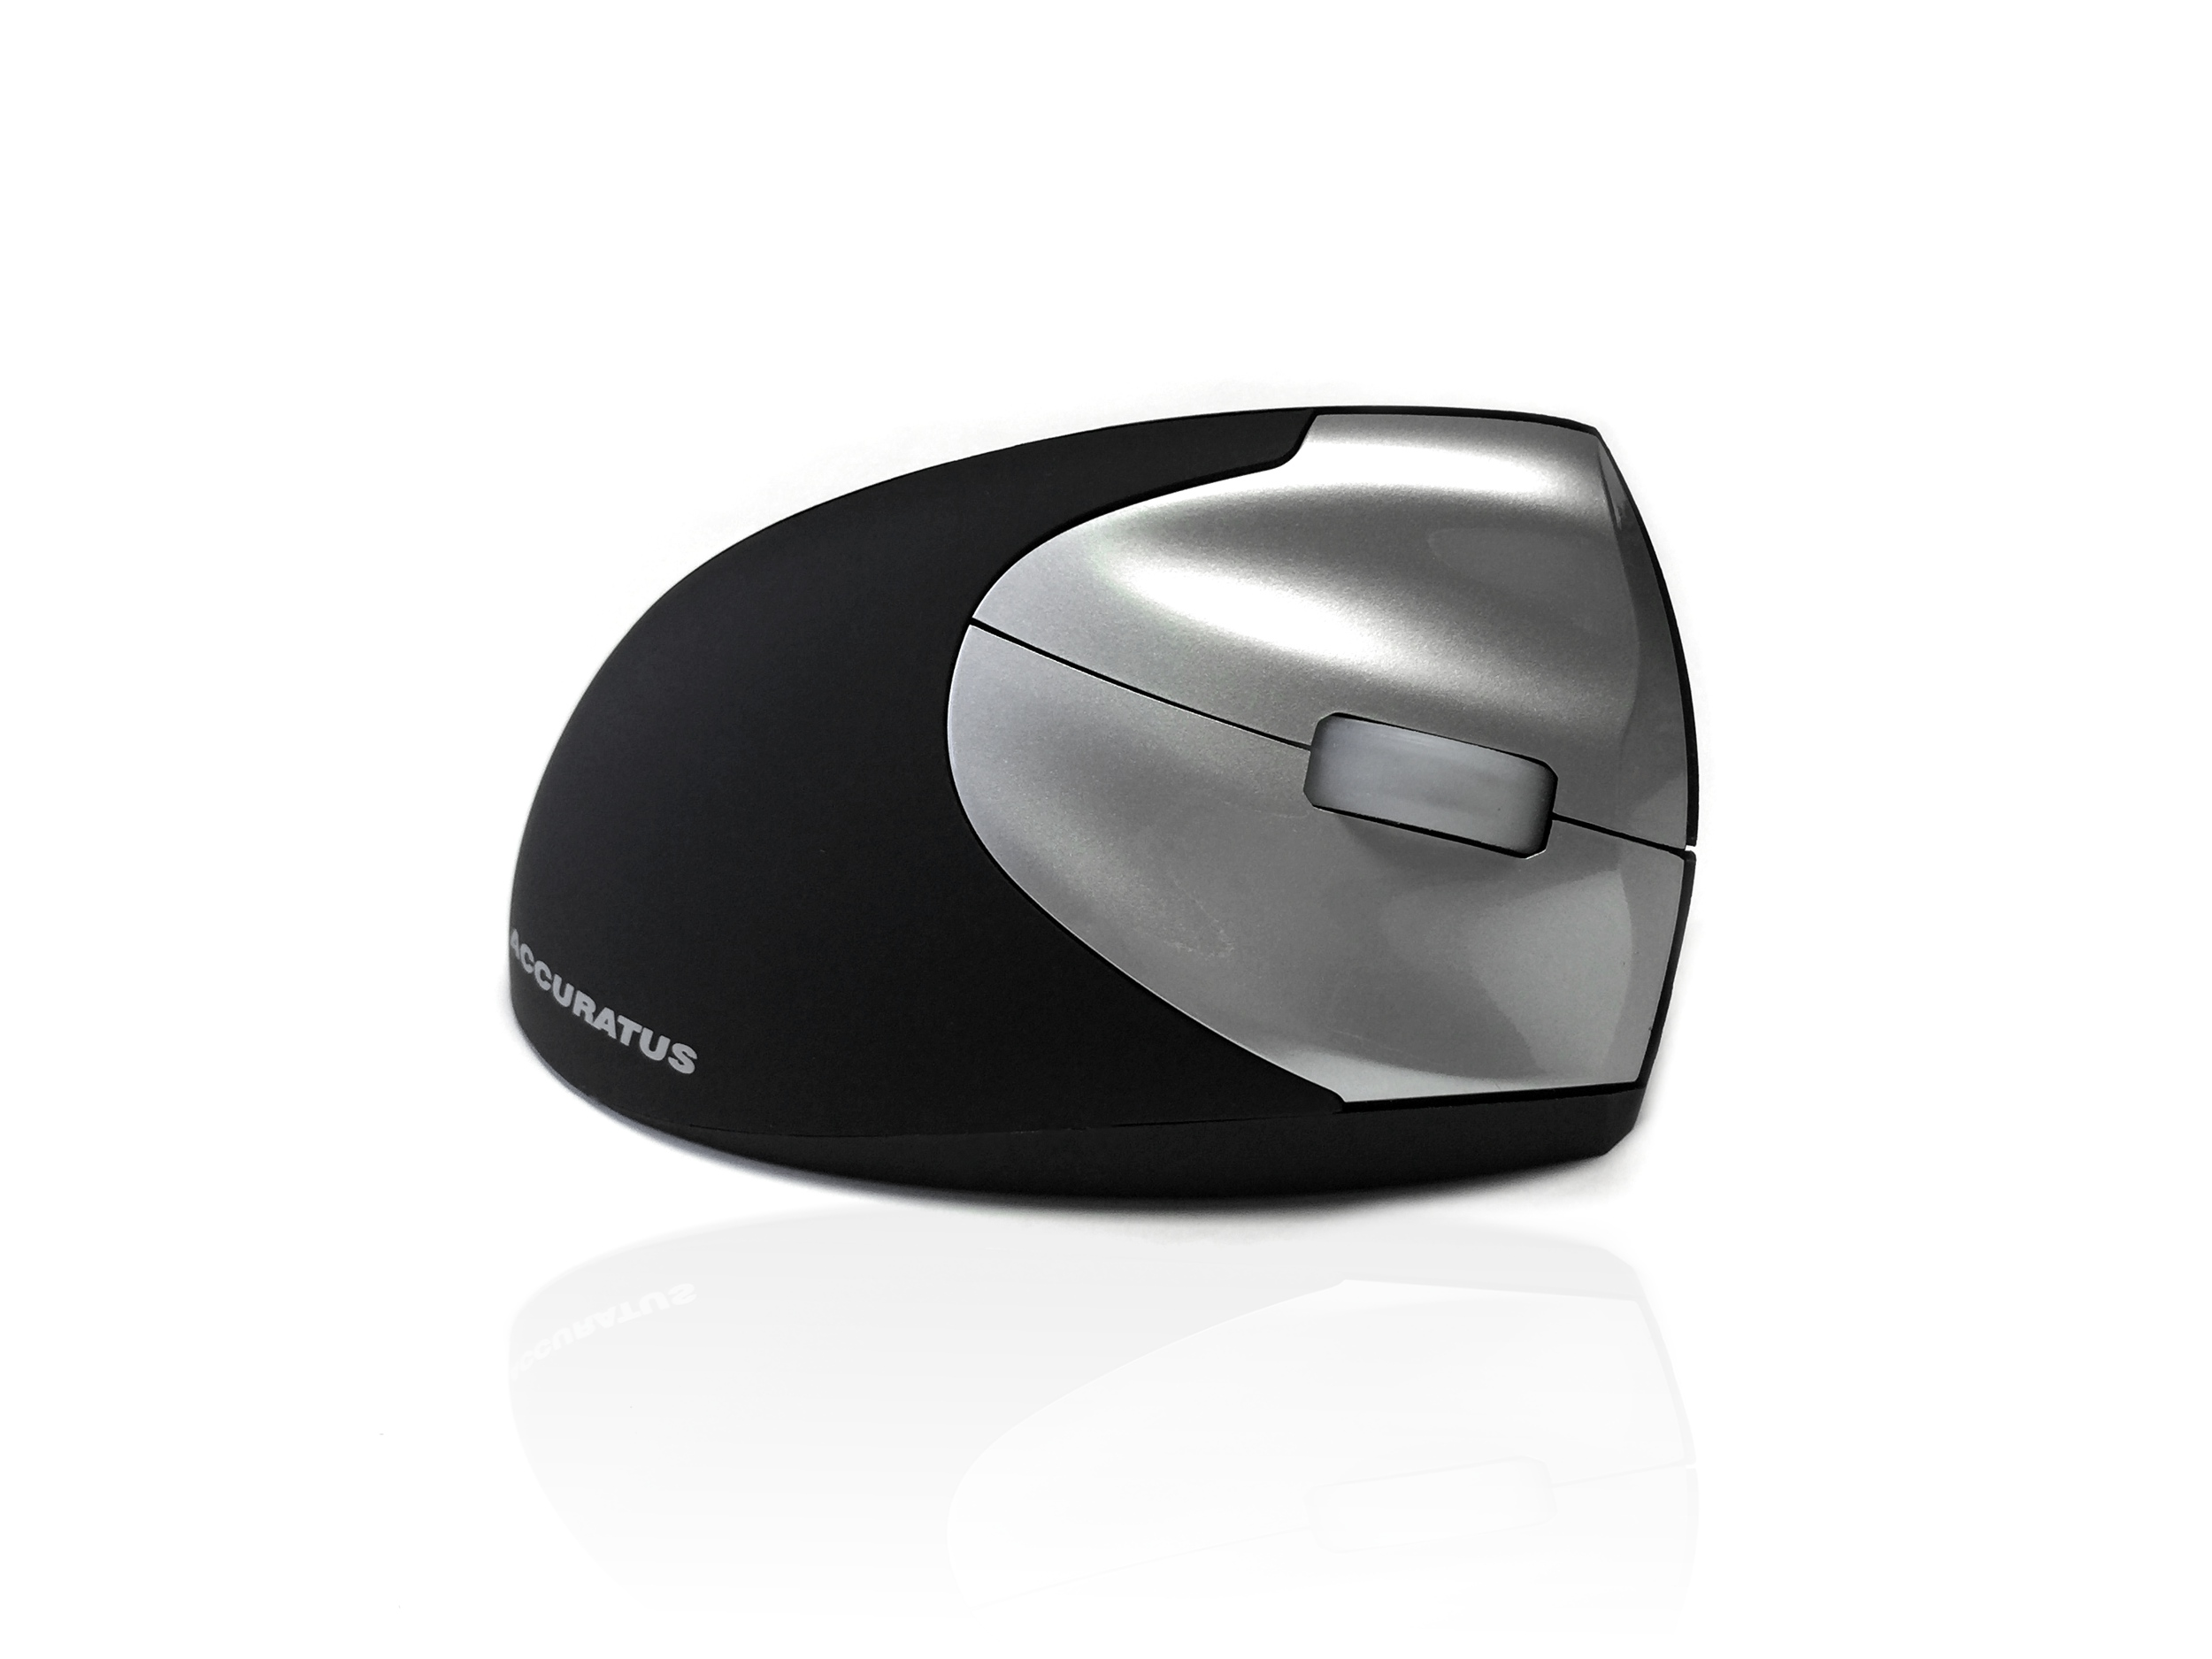 Wireless Grip Mouse